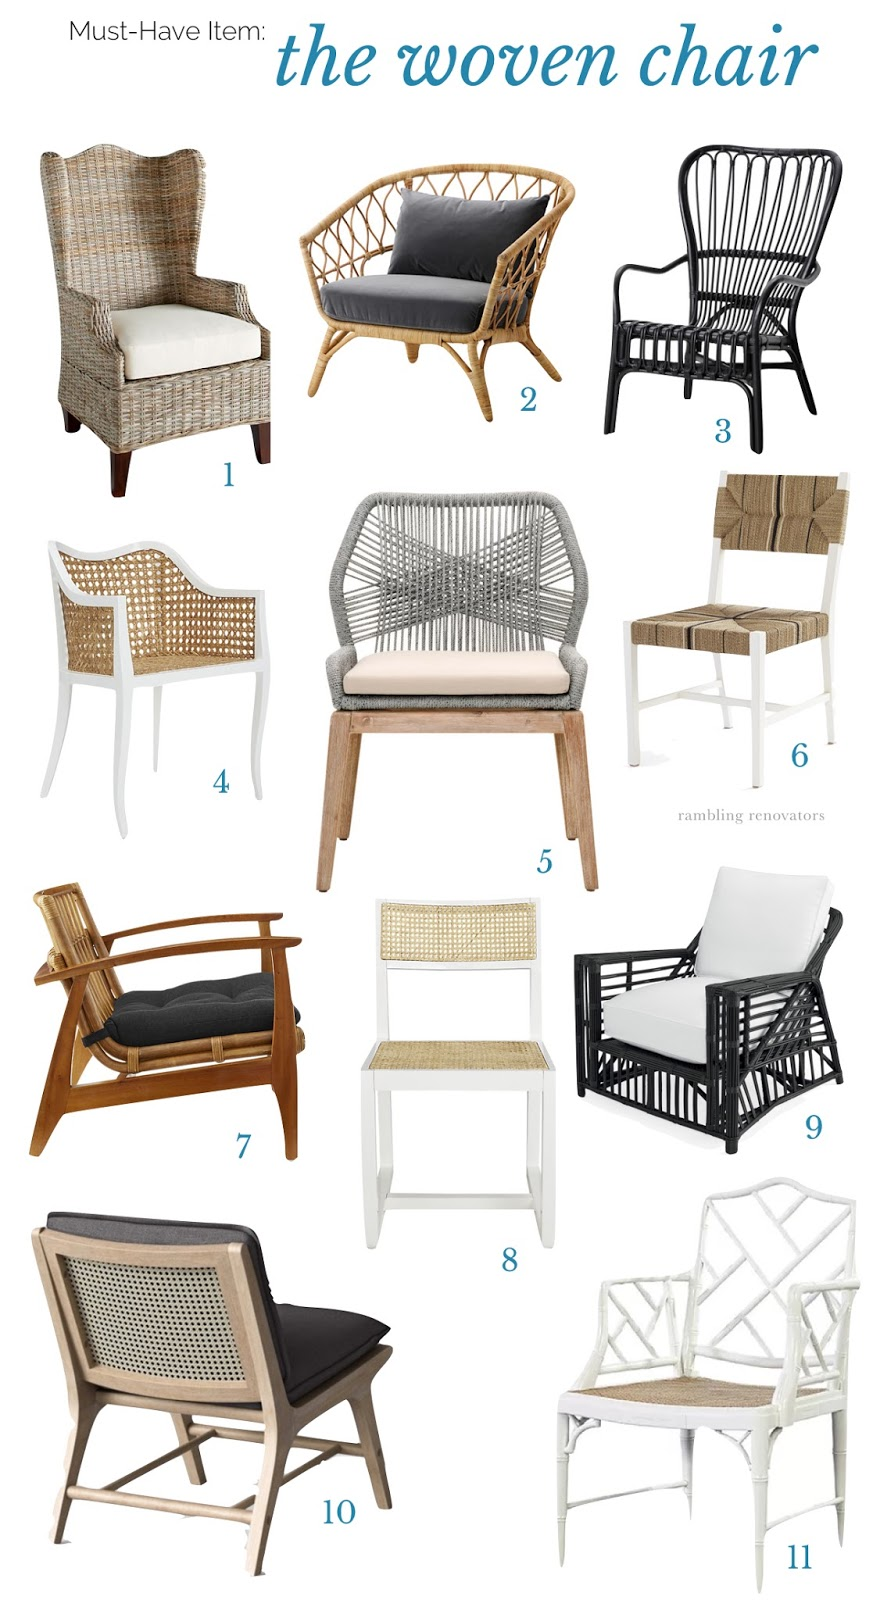 woven chairs, rattan chair, wicker chair | Ramblingrenovators.ca